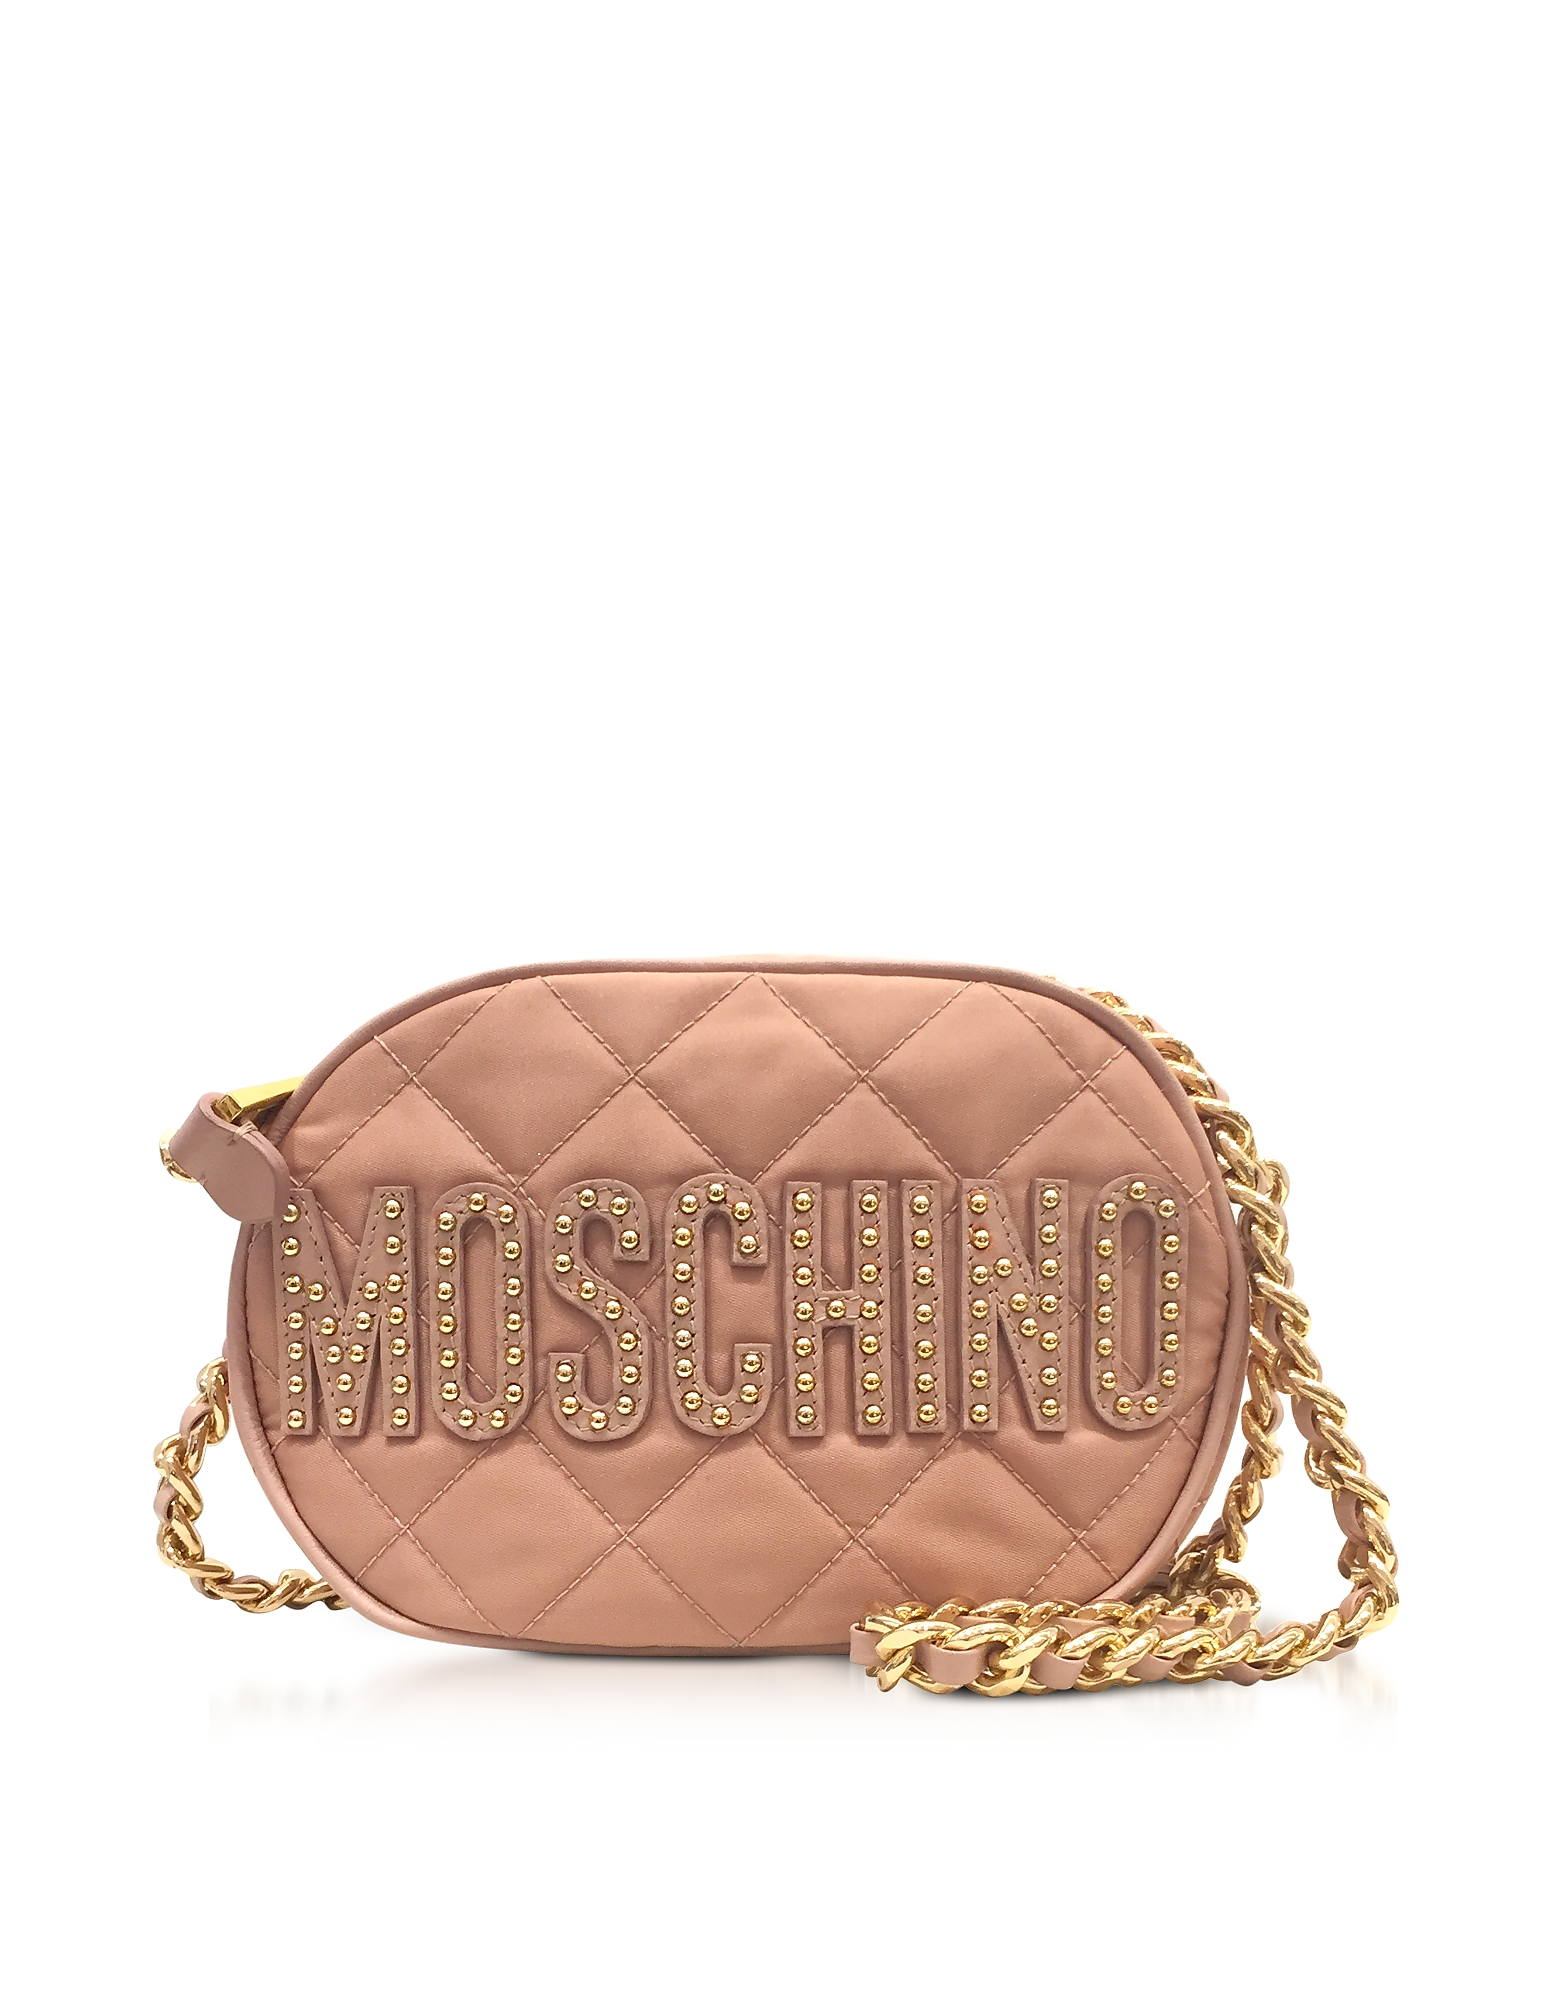 Moschino Pink Nylon Quilted Oval Crossbody Bag w/Studs Logo